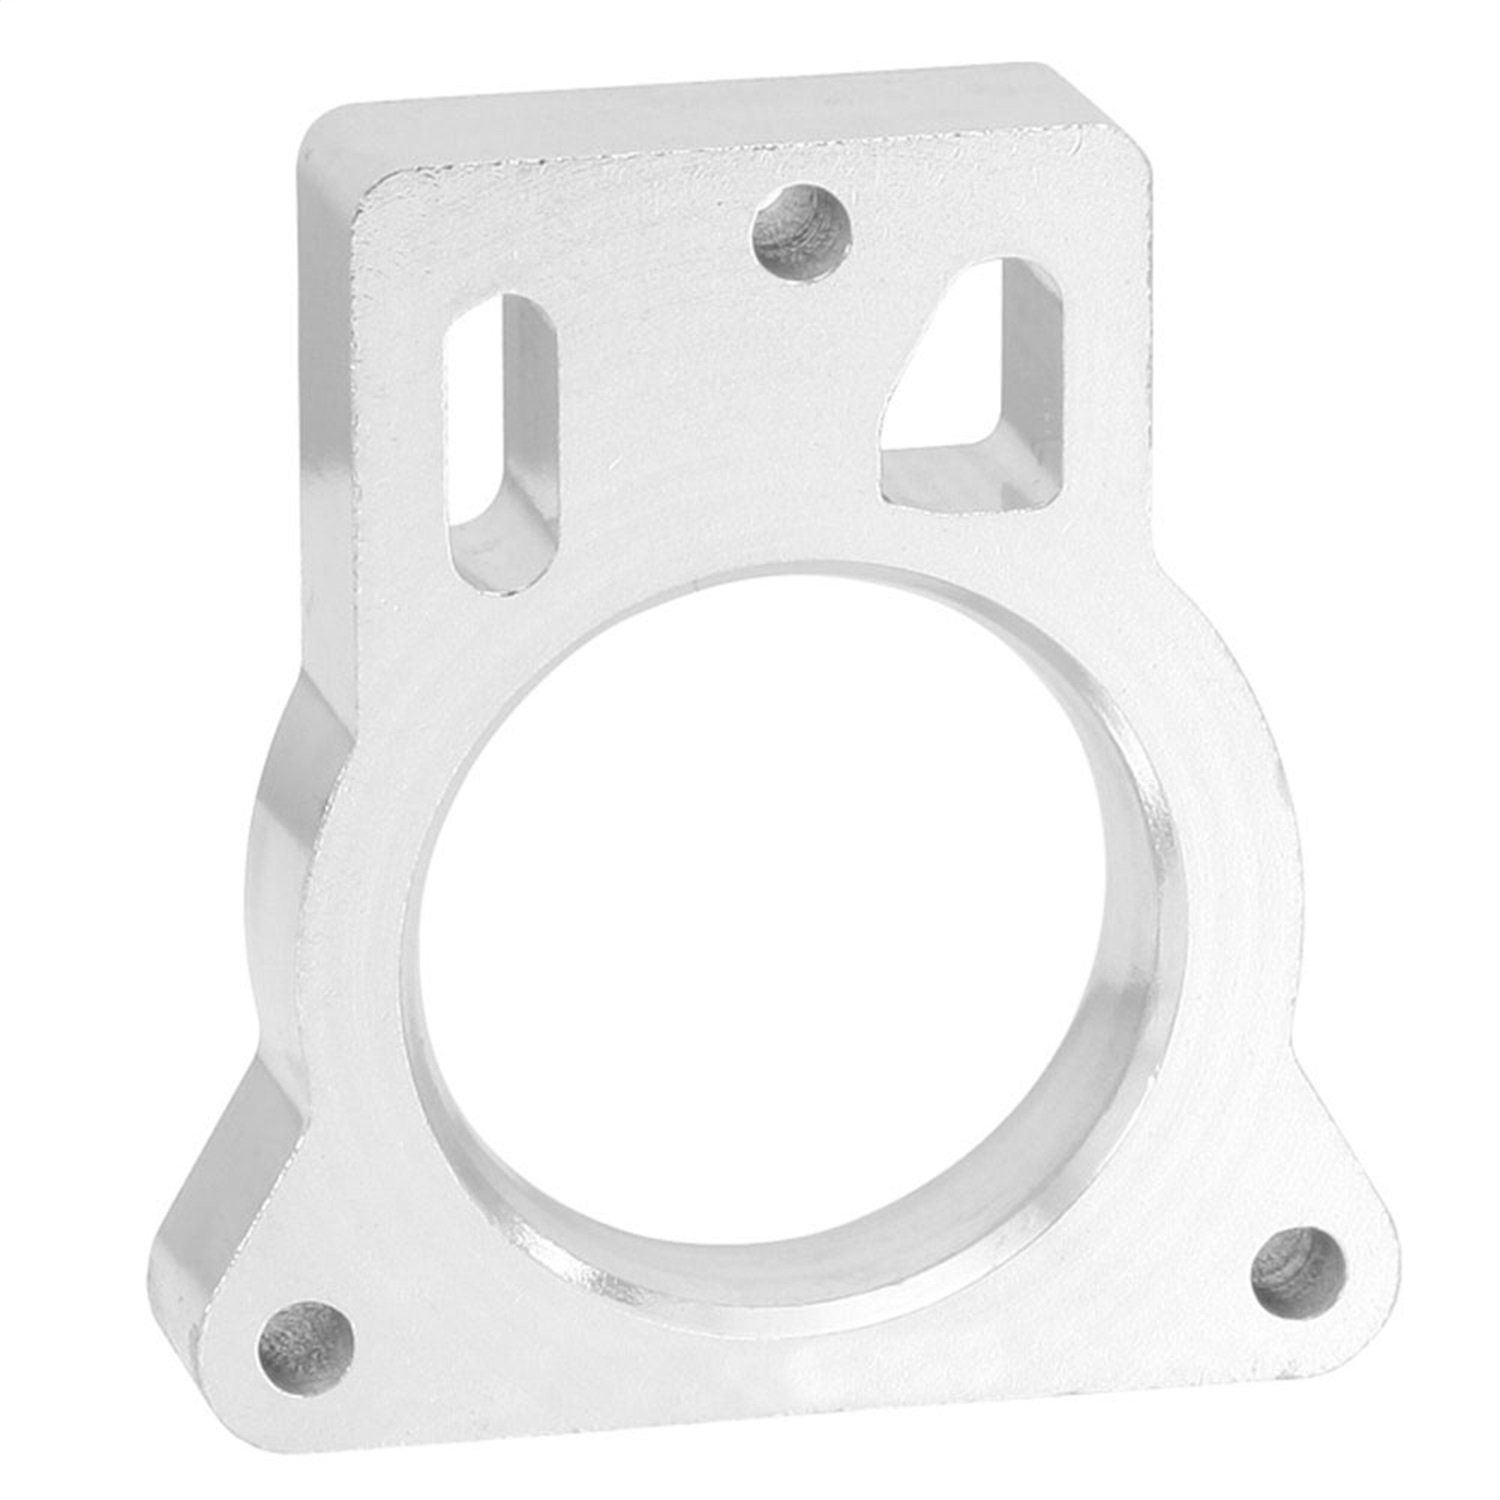 Spectre Performance 11251 Throttle Body Injection Spacer